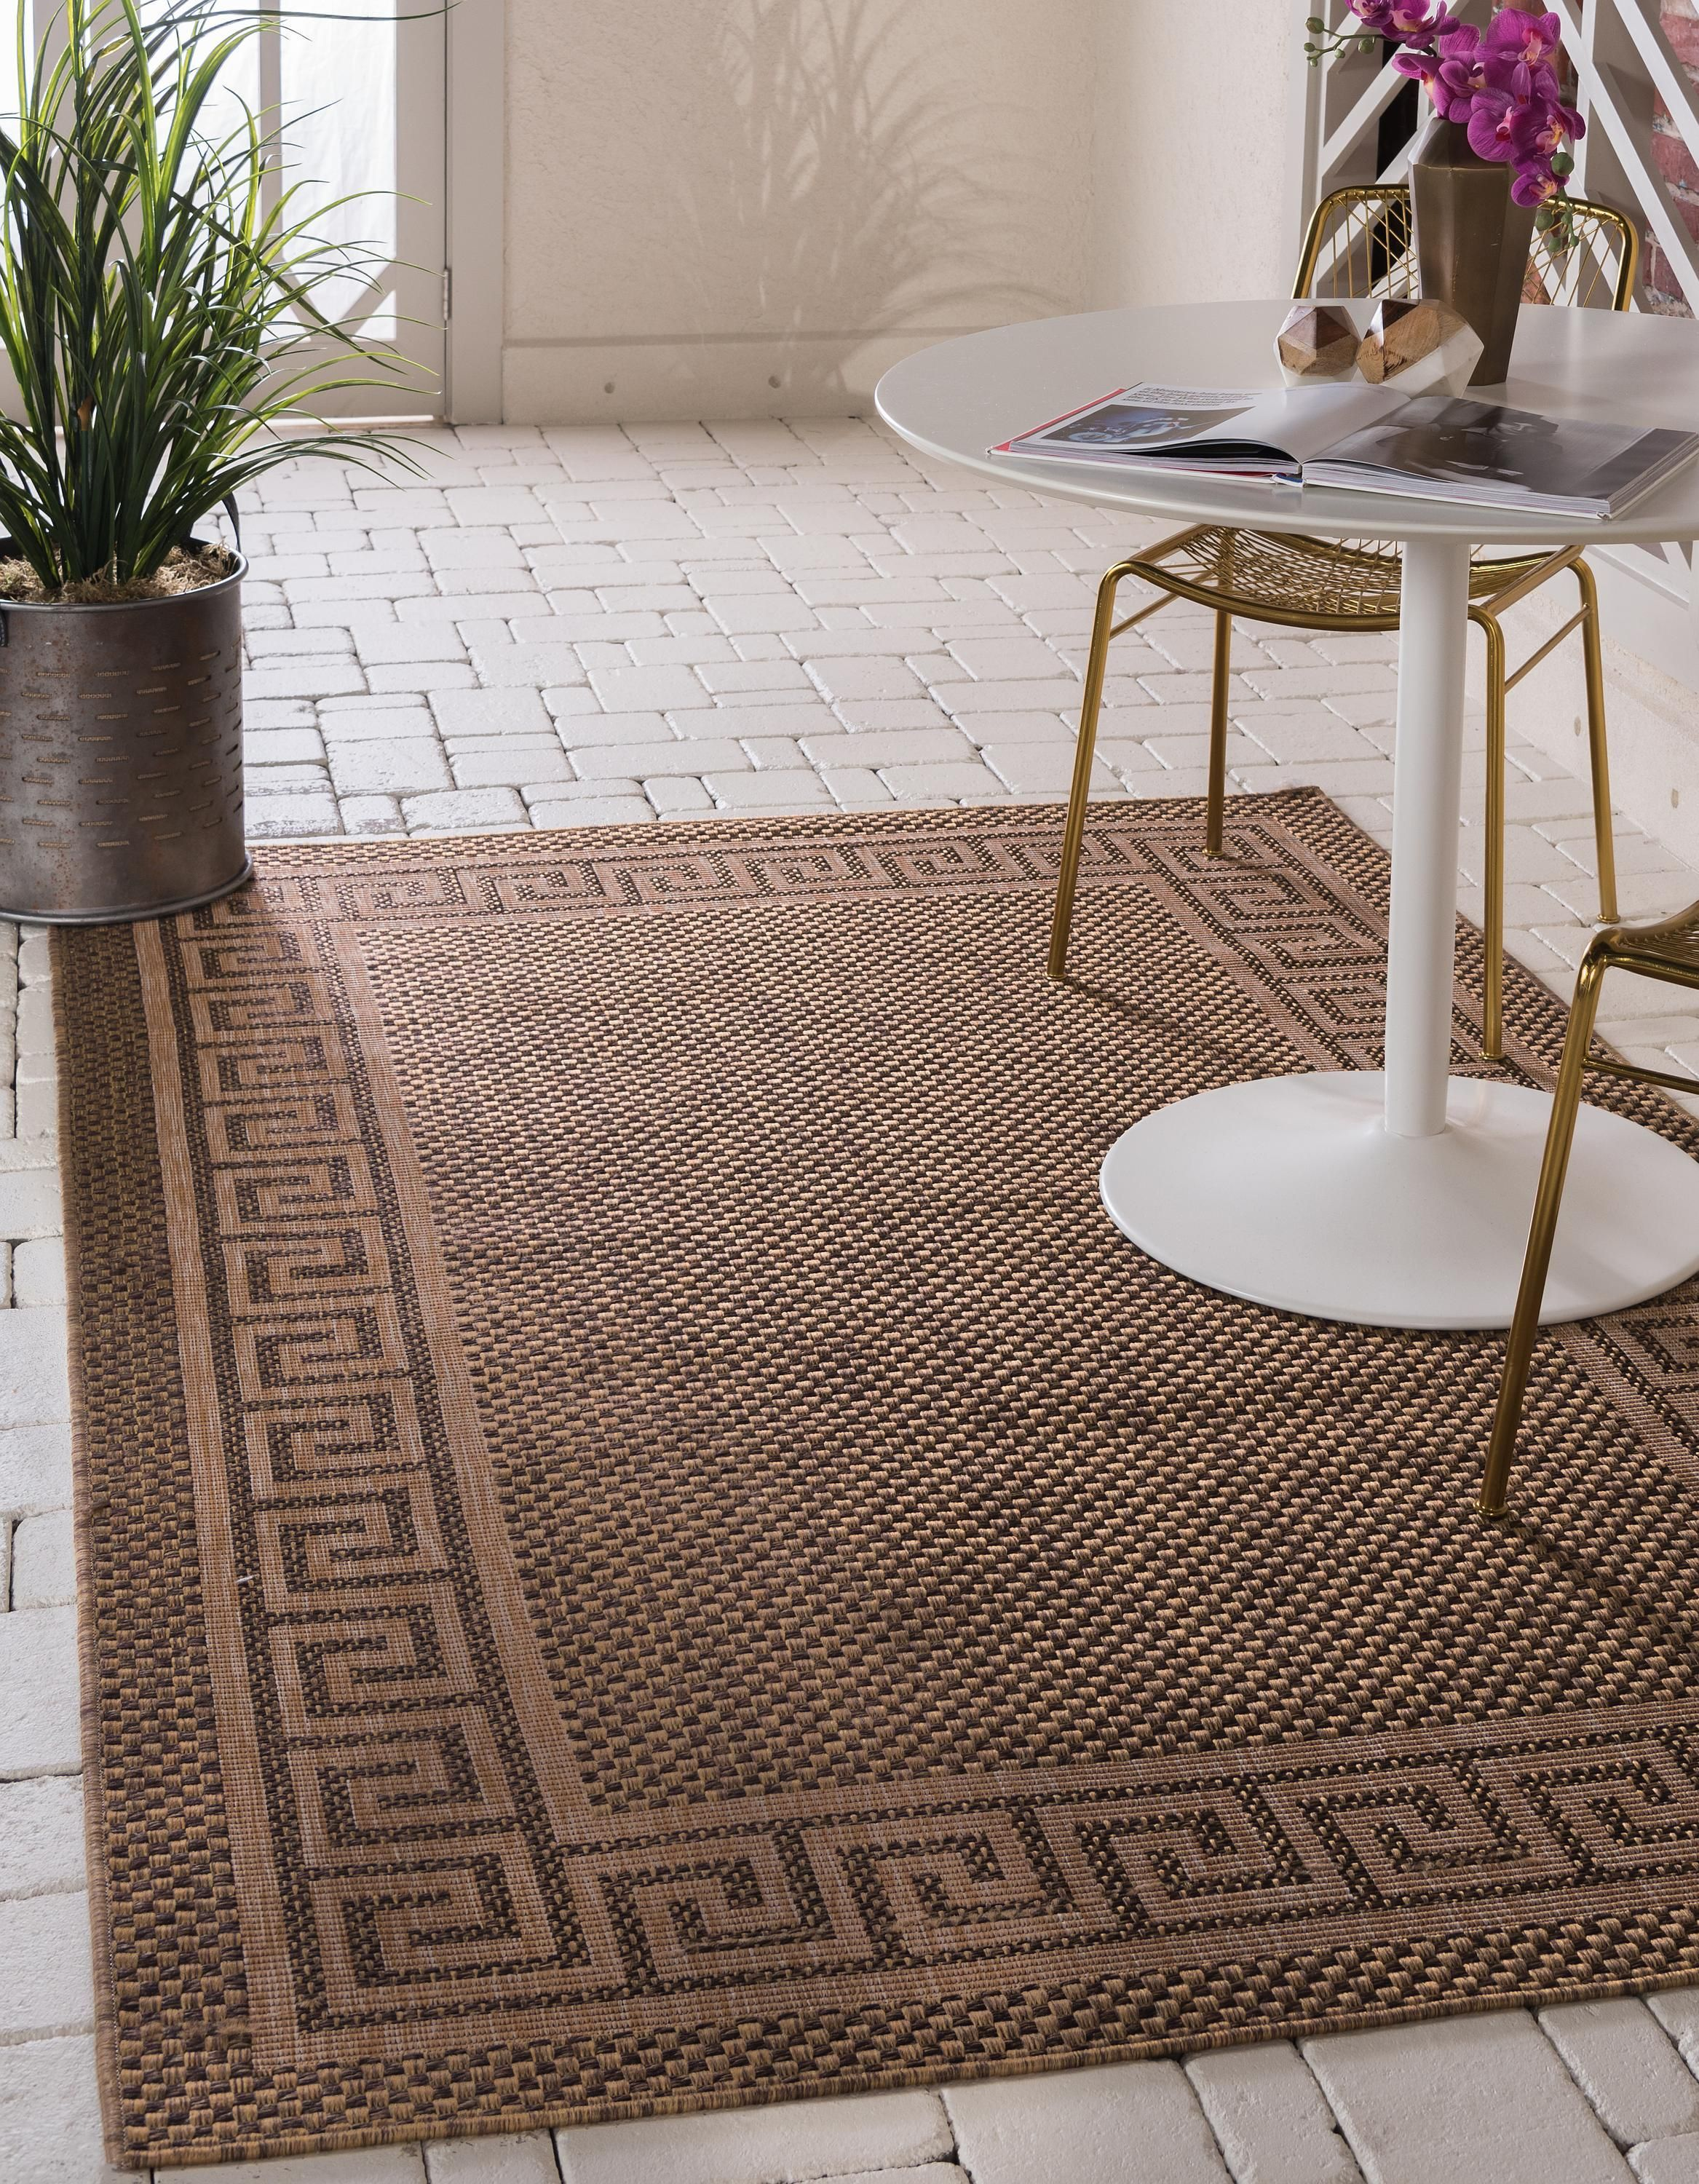 Find Stunning Rugs Perfect For Your Outdoor Space From Our Outdoor